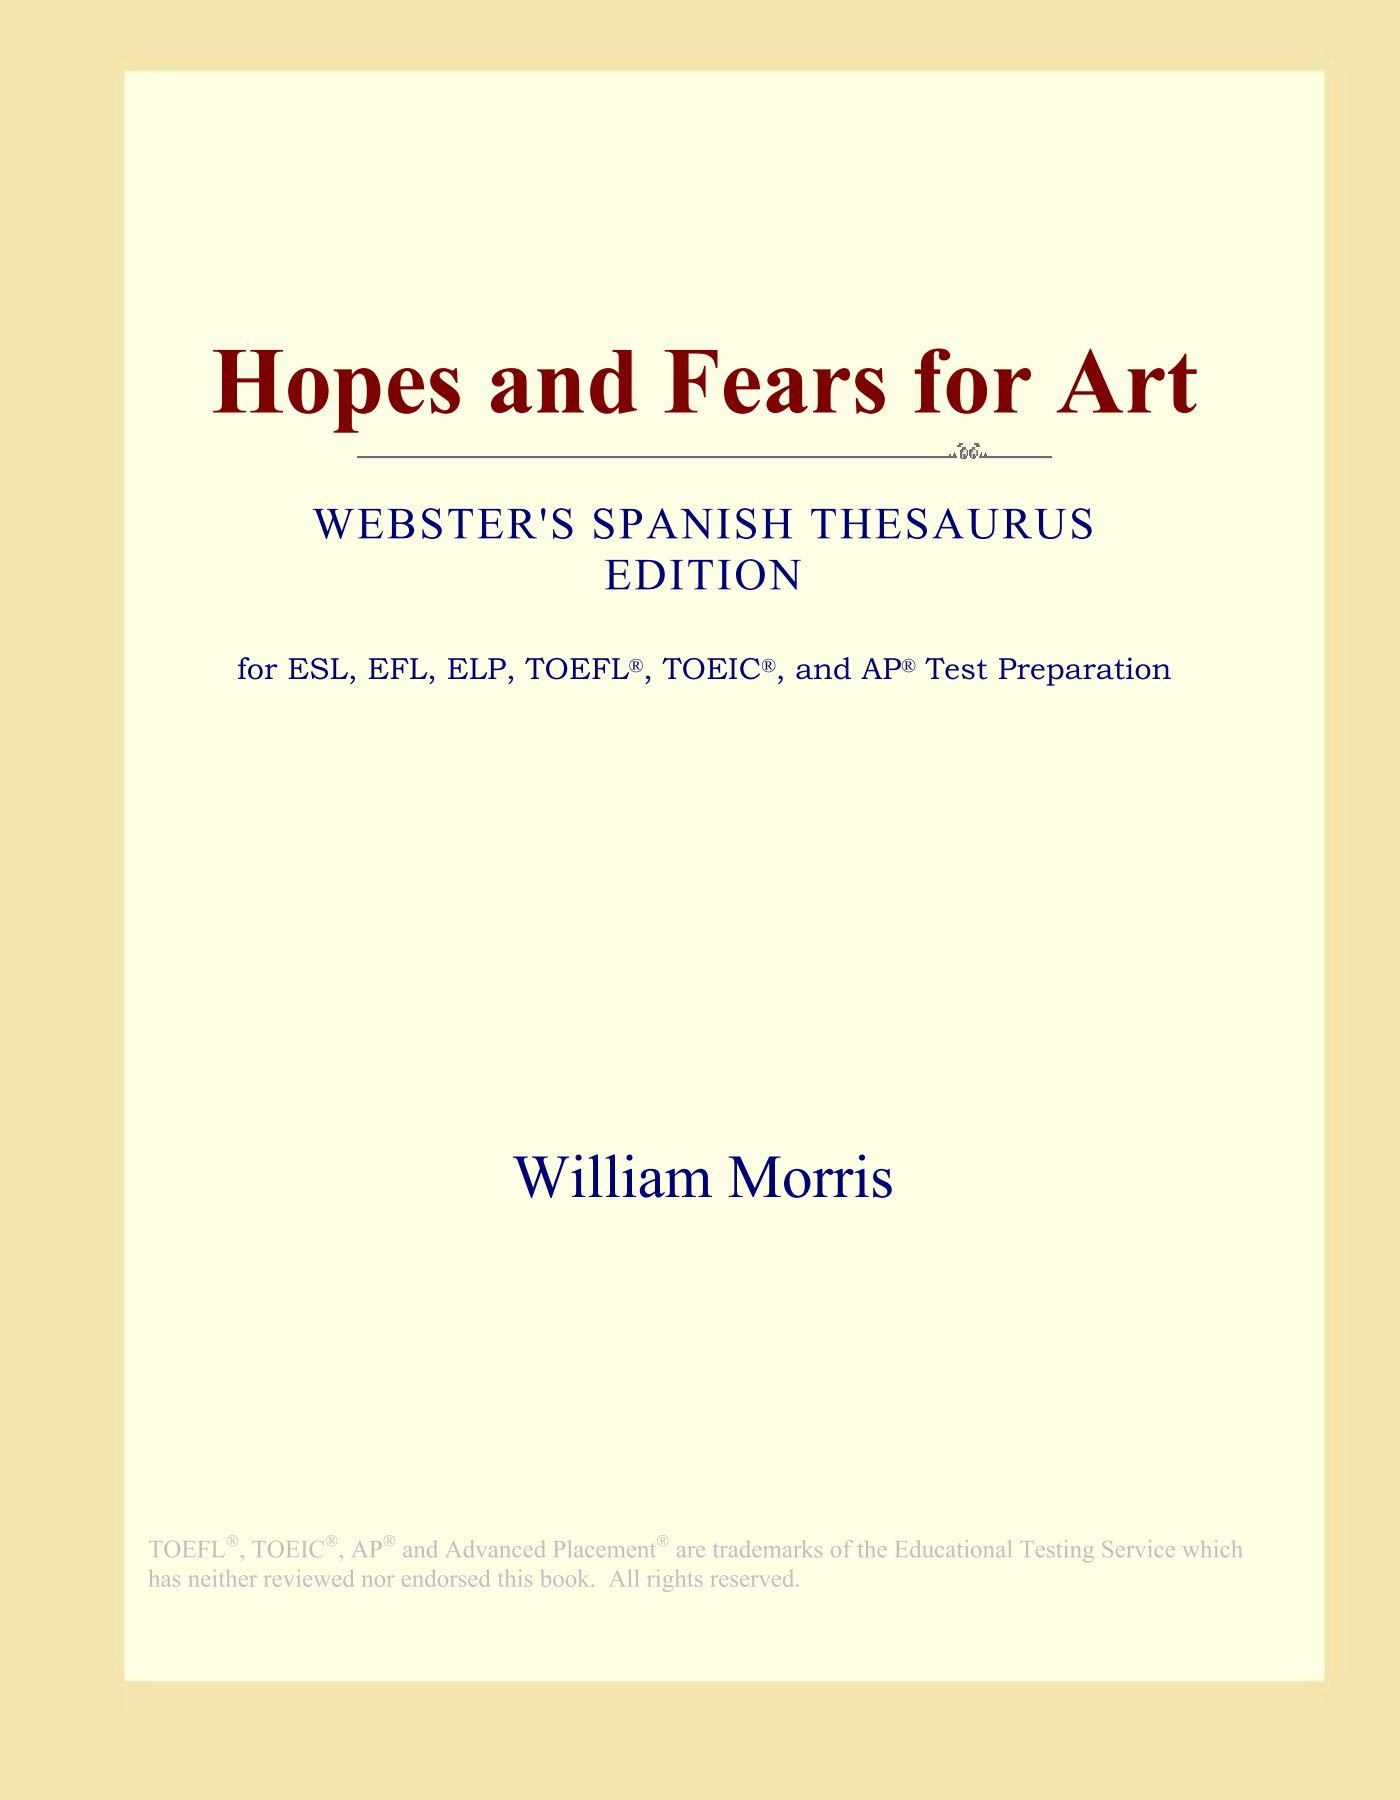 Hopes and Fears for Art (Webster's Spanish Thesaurus Edition) PDF